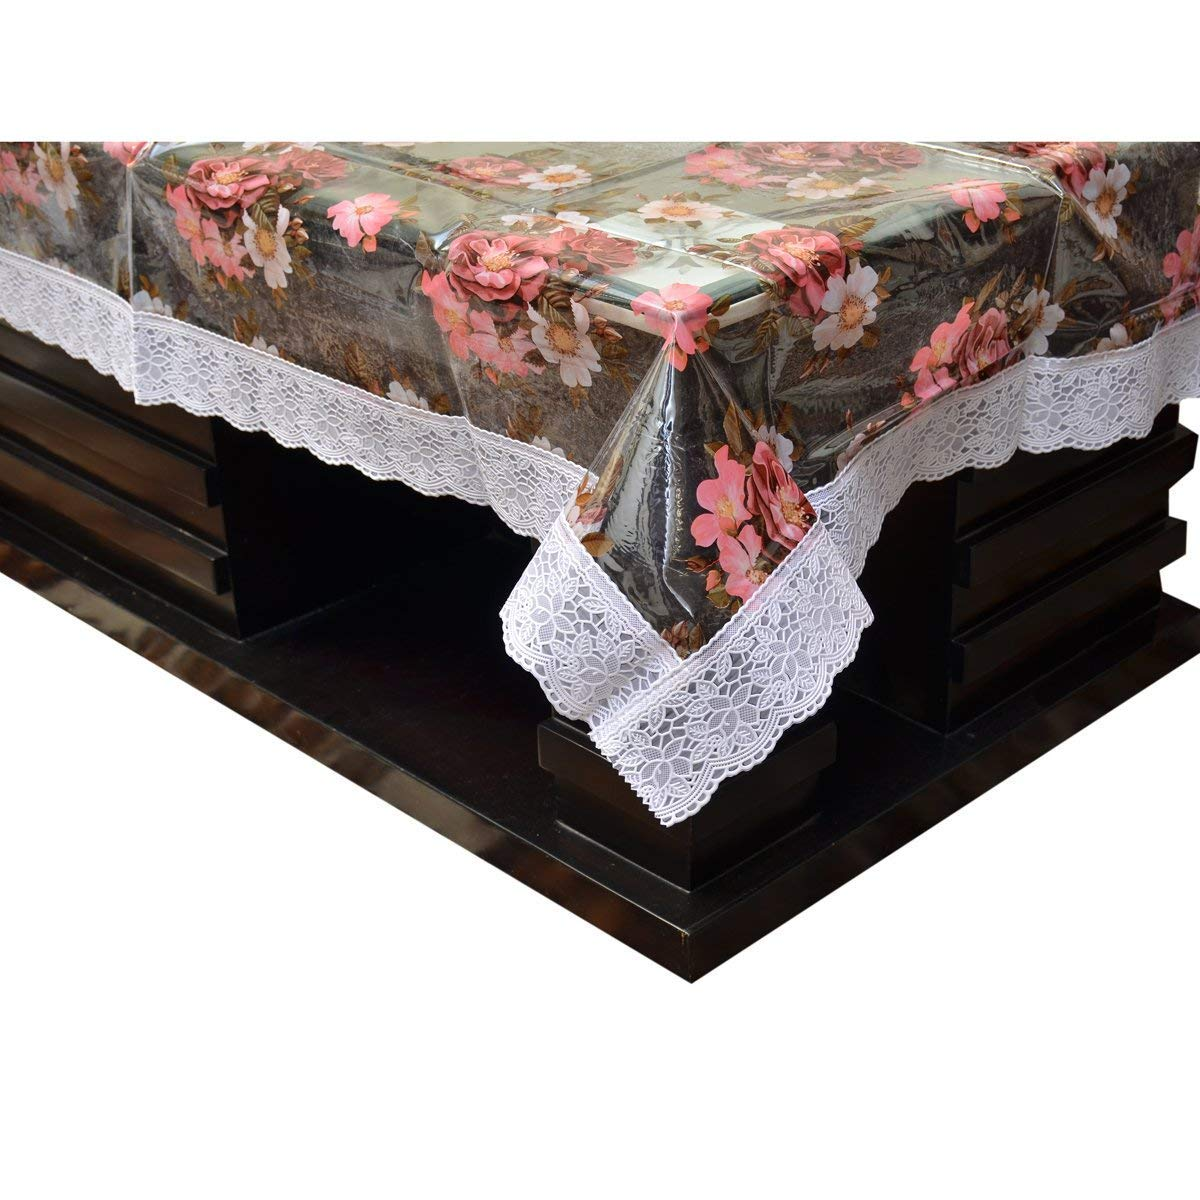 Kuber Industries™ Waterproof Center Table Cover 4 Seater 40